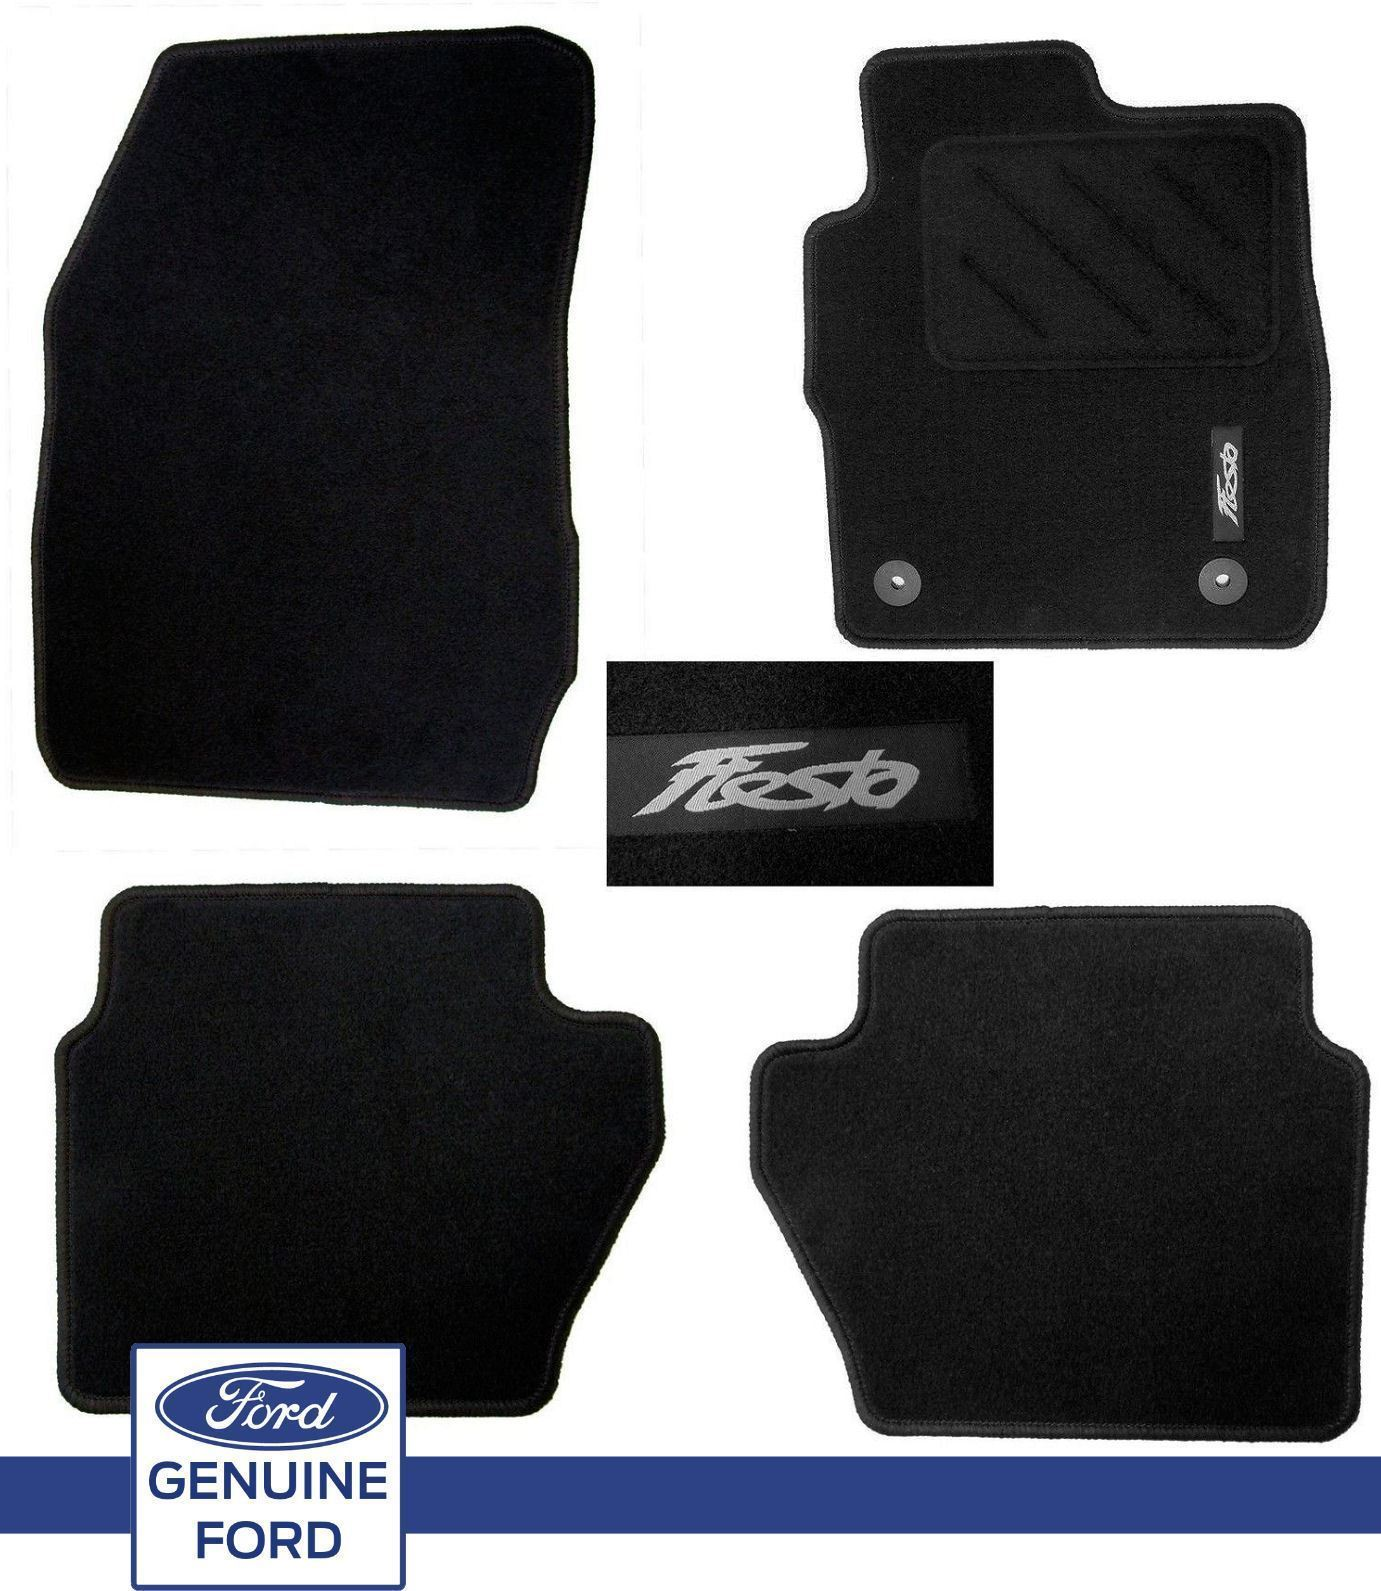 Genuine Ford Fiesta Mk7 2013 On Black Set Mats New Shape Inc ST ST2 Front u0026 Rear | eBay  sc 1 st  eBay & Genuine Ford Fiesta Mk7 2013 On Black Set Mats New Shape Inc ST ... markmcfarlin.com